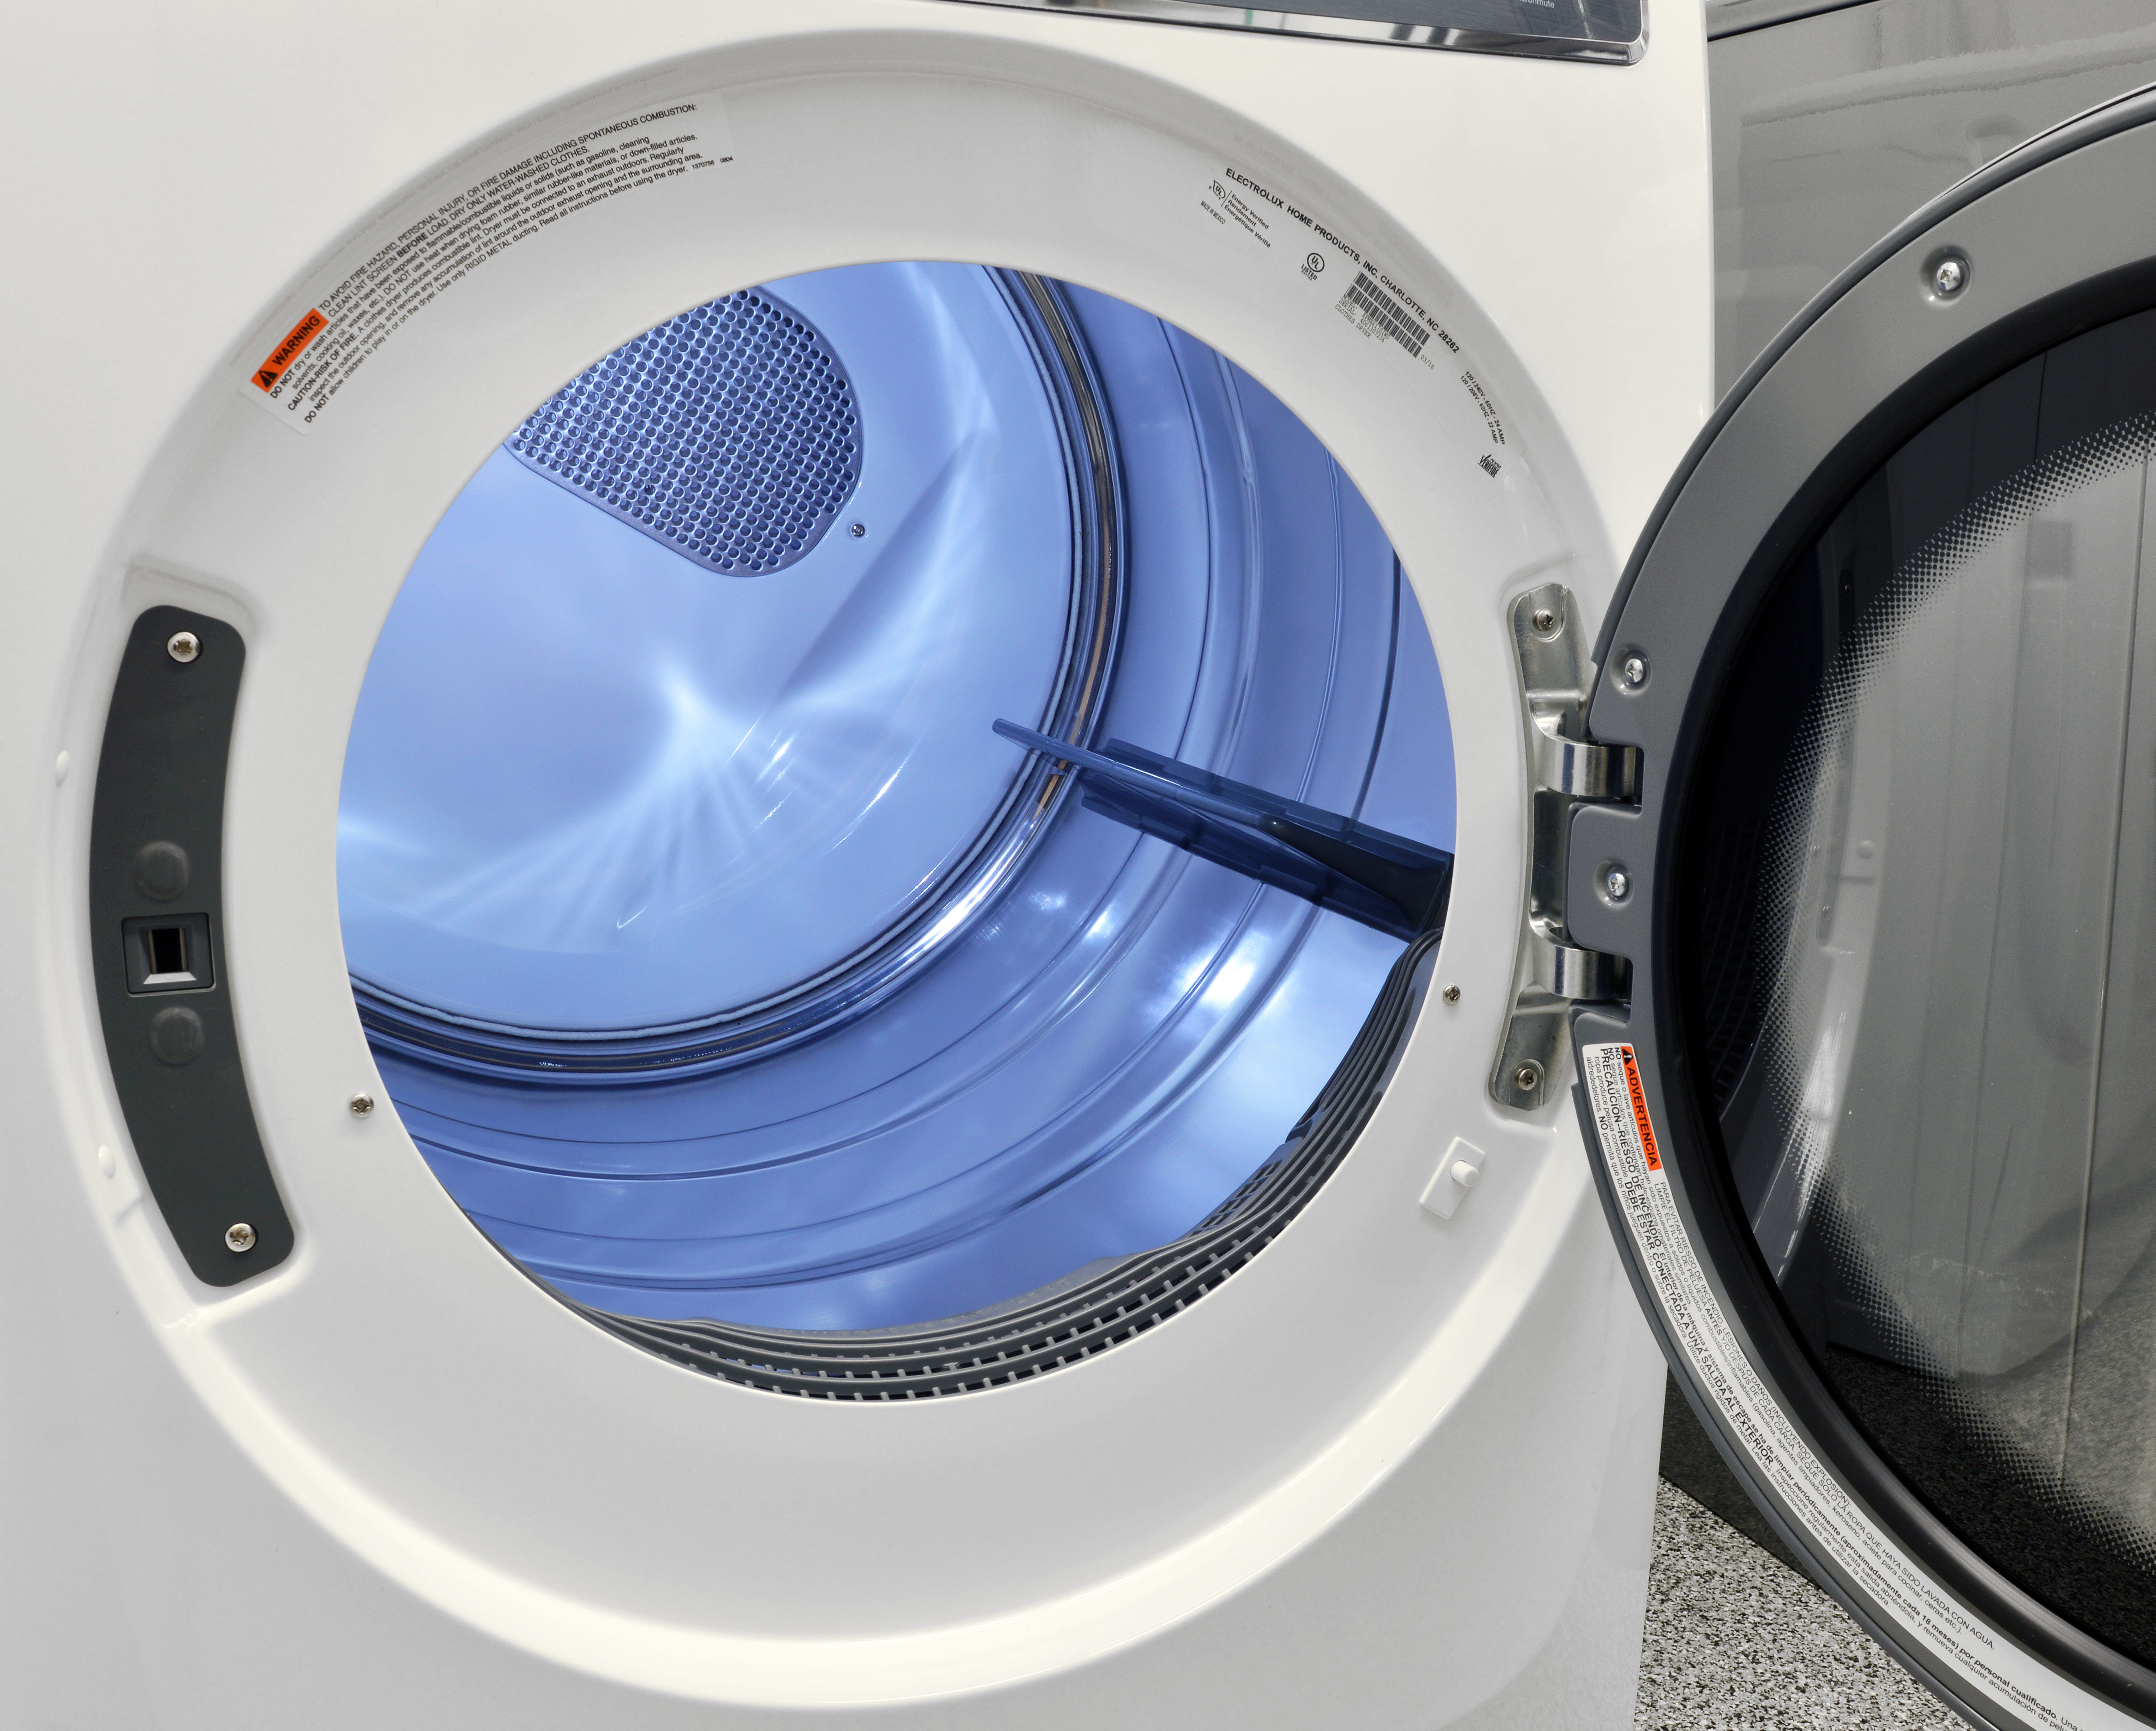 The Electrolux EFME617SIW's 8-cu.-ft. stainless steel drum has built-in LED lighting that makes it easy to find missing clothes.